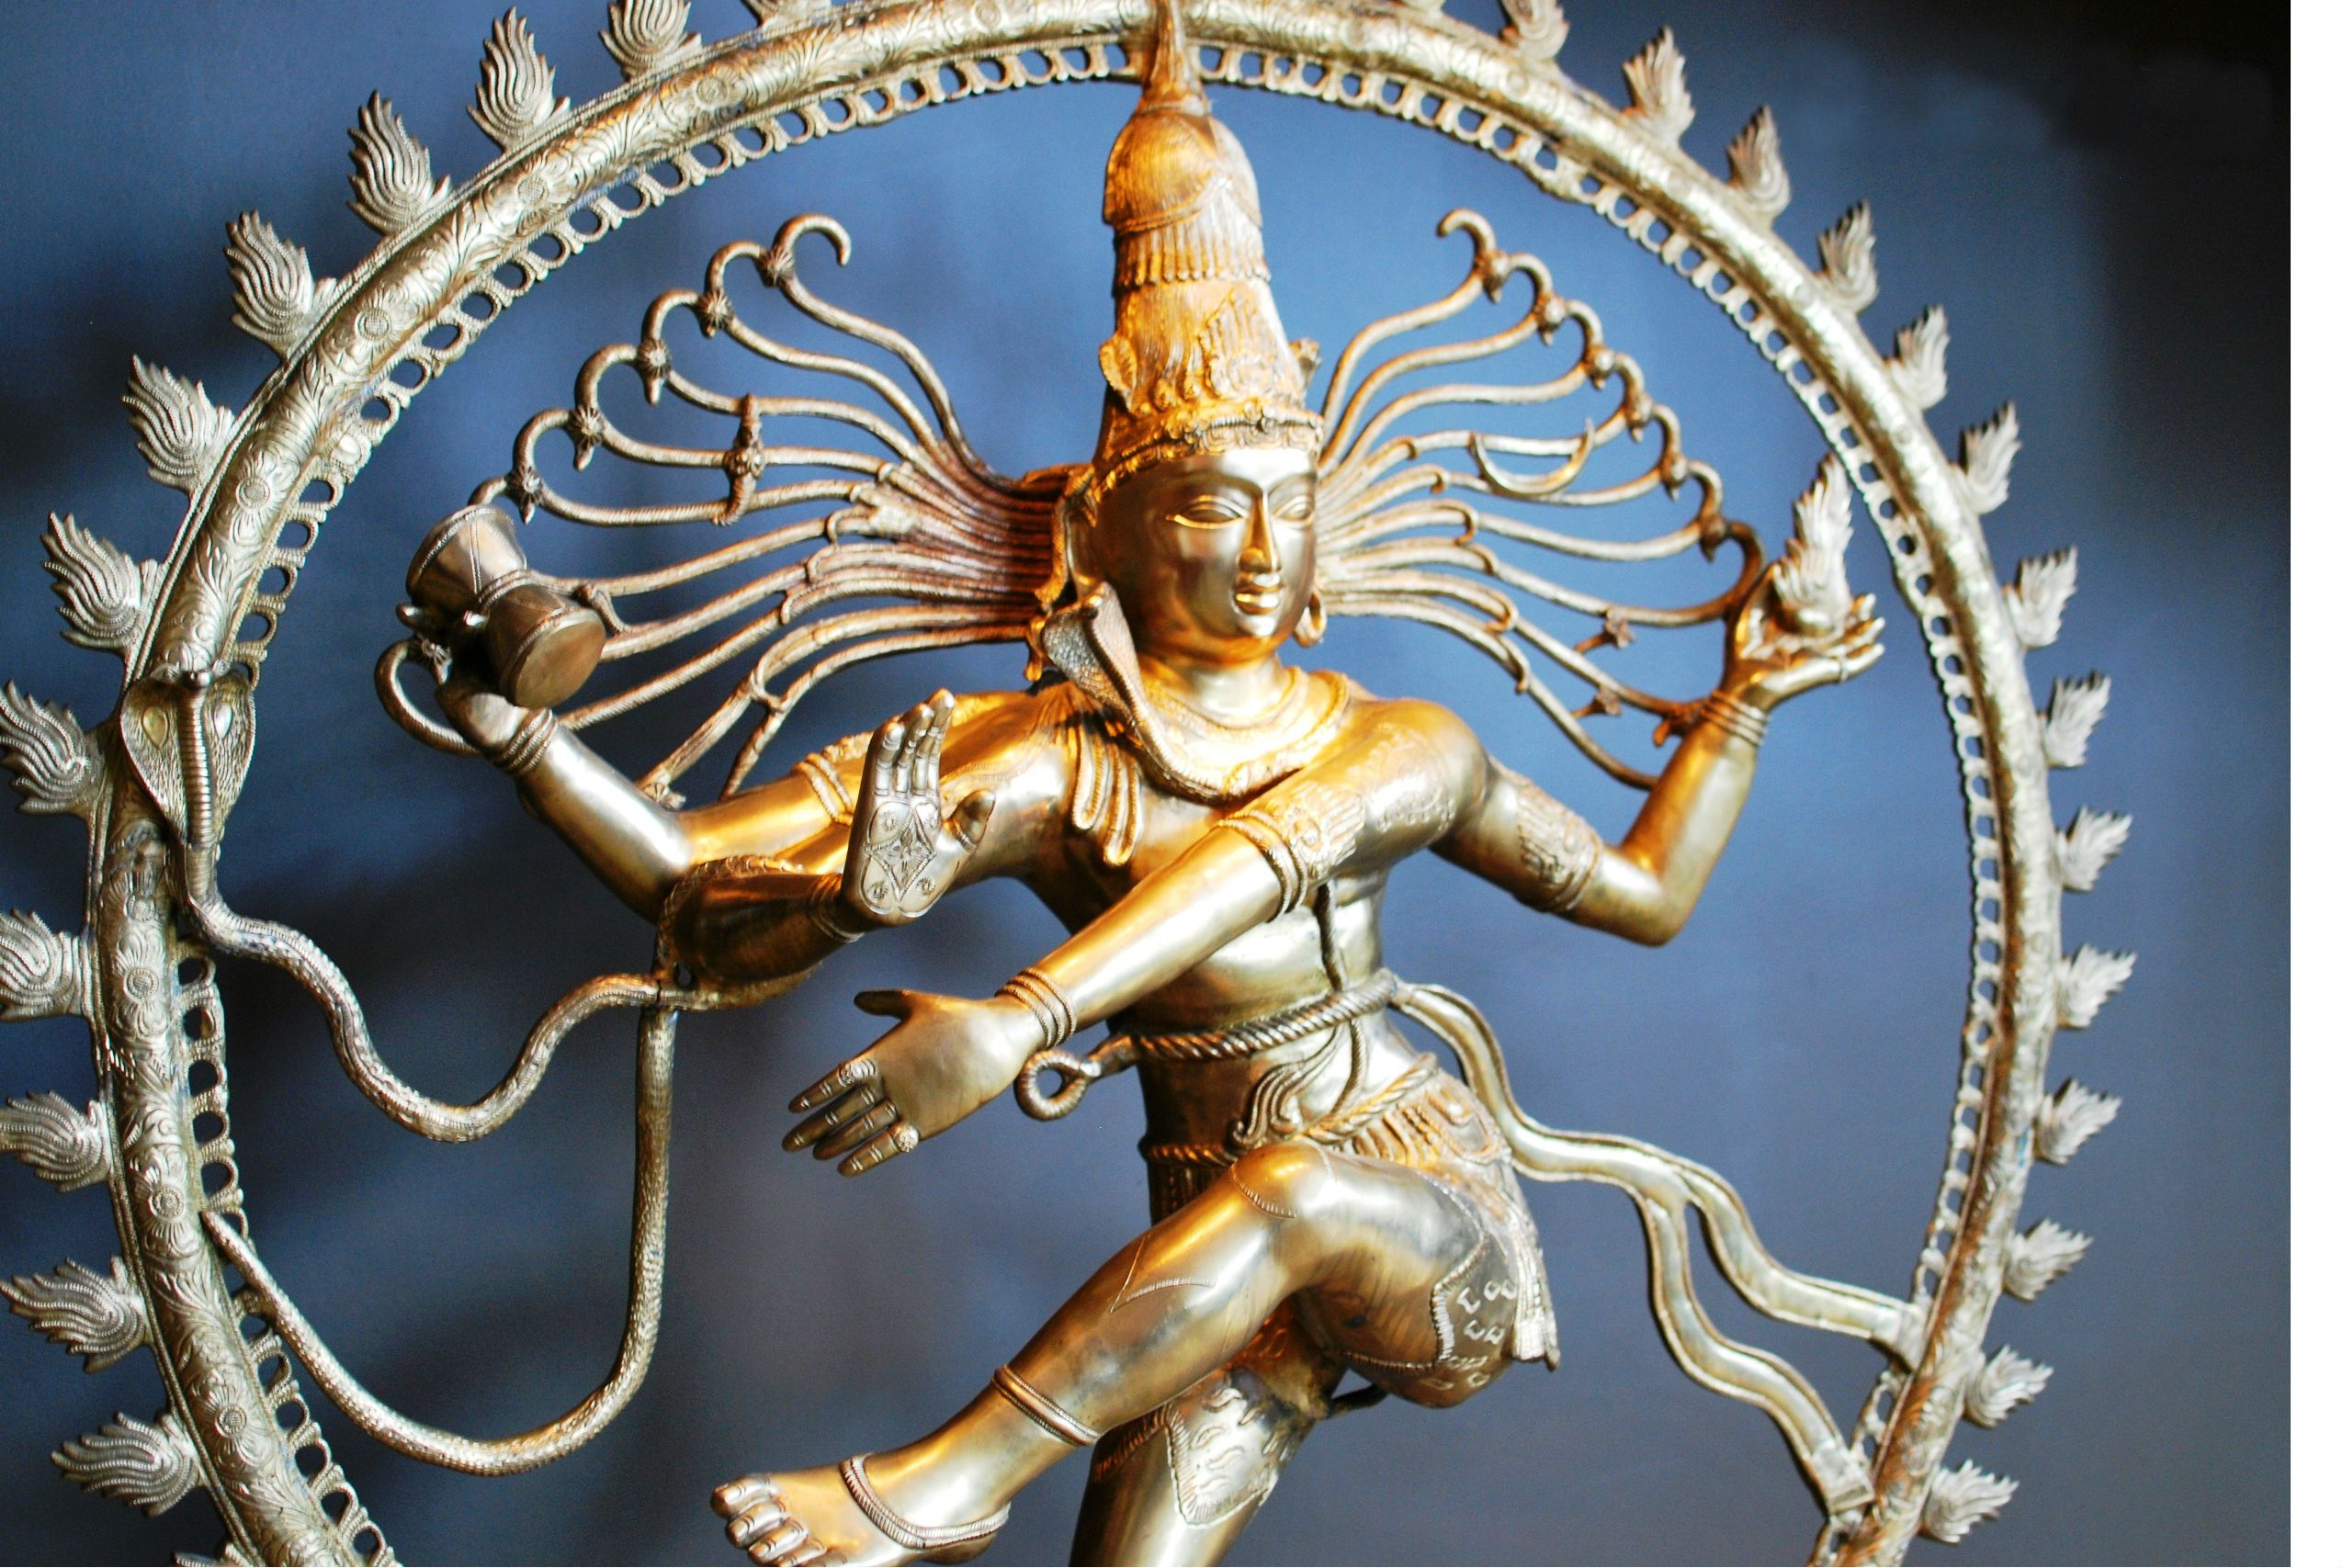 Wonderful Wallpaper Lord Nataraja - 5ceed43e6a27ba6a612f6432df74b133  2018_41774.jpg